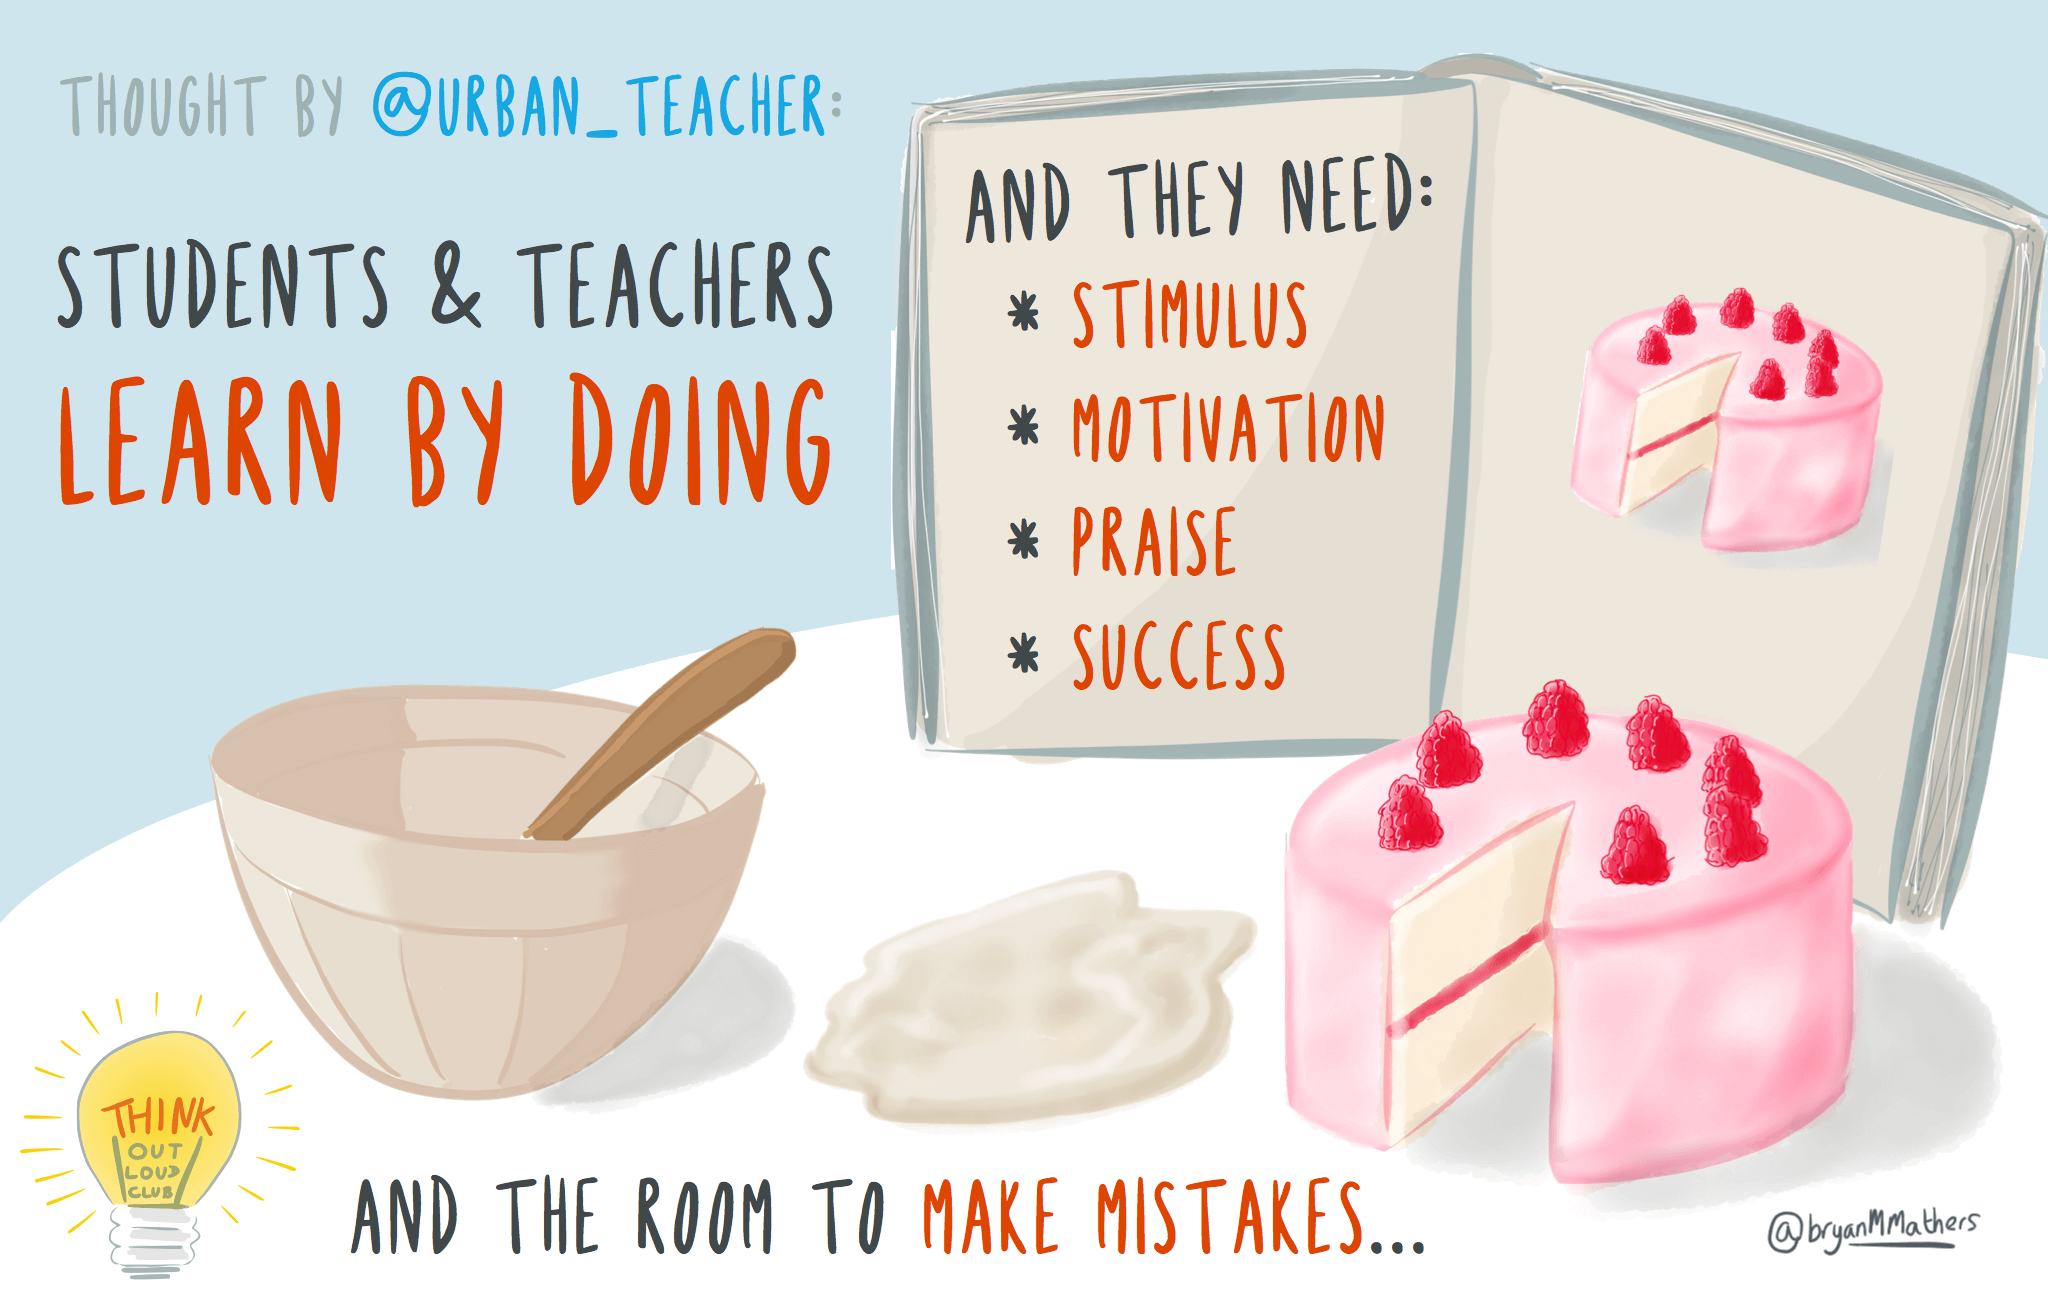 Students and Teachers learn through doing